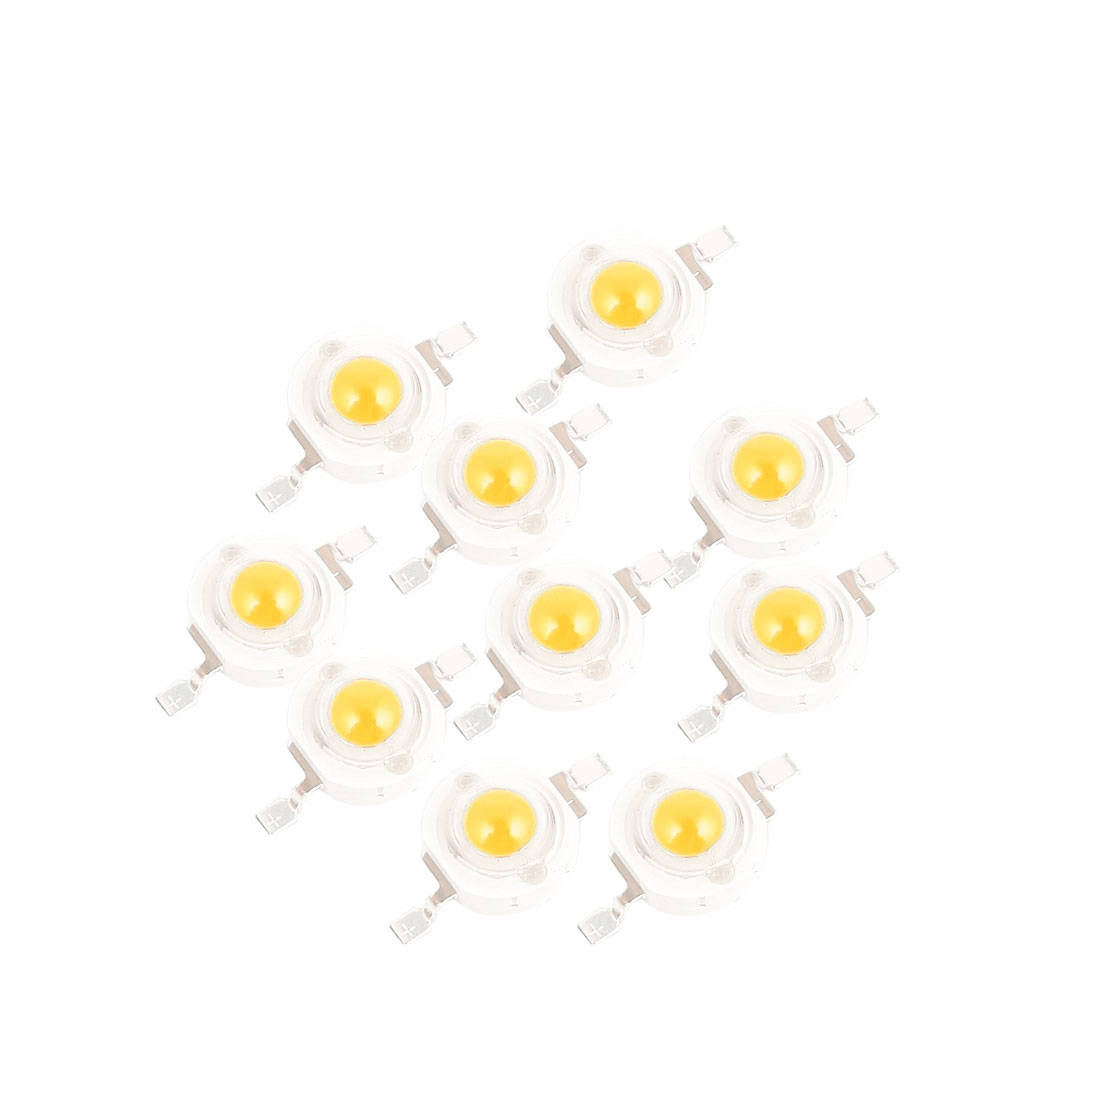 10 Pcs Warm White Light SMD LED Bead Chip Bulb Lamp 3.0-3.6V 350mA 1Watt